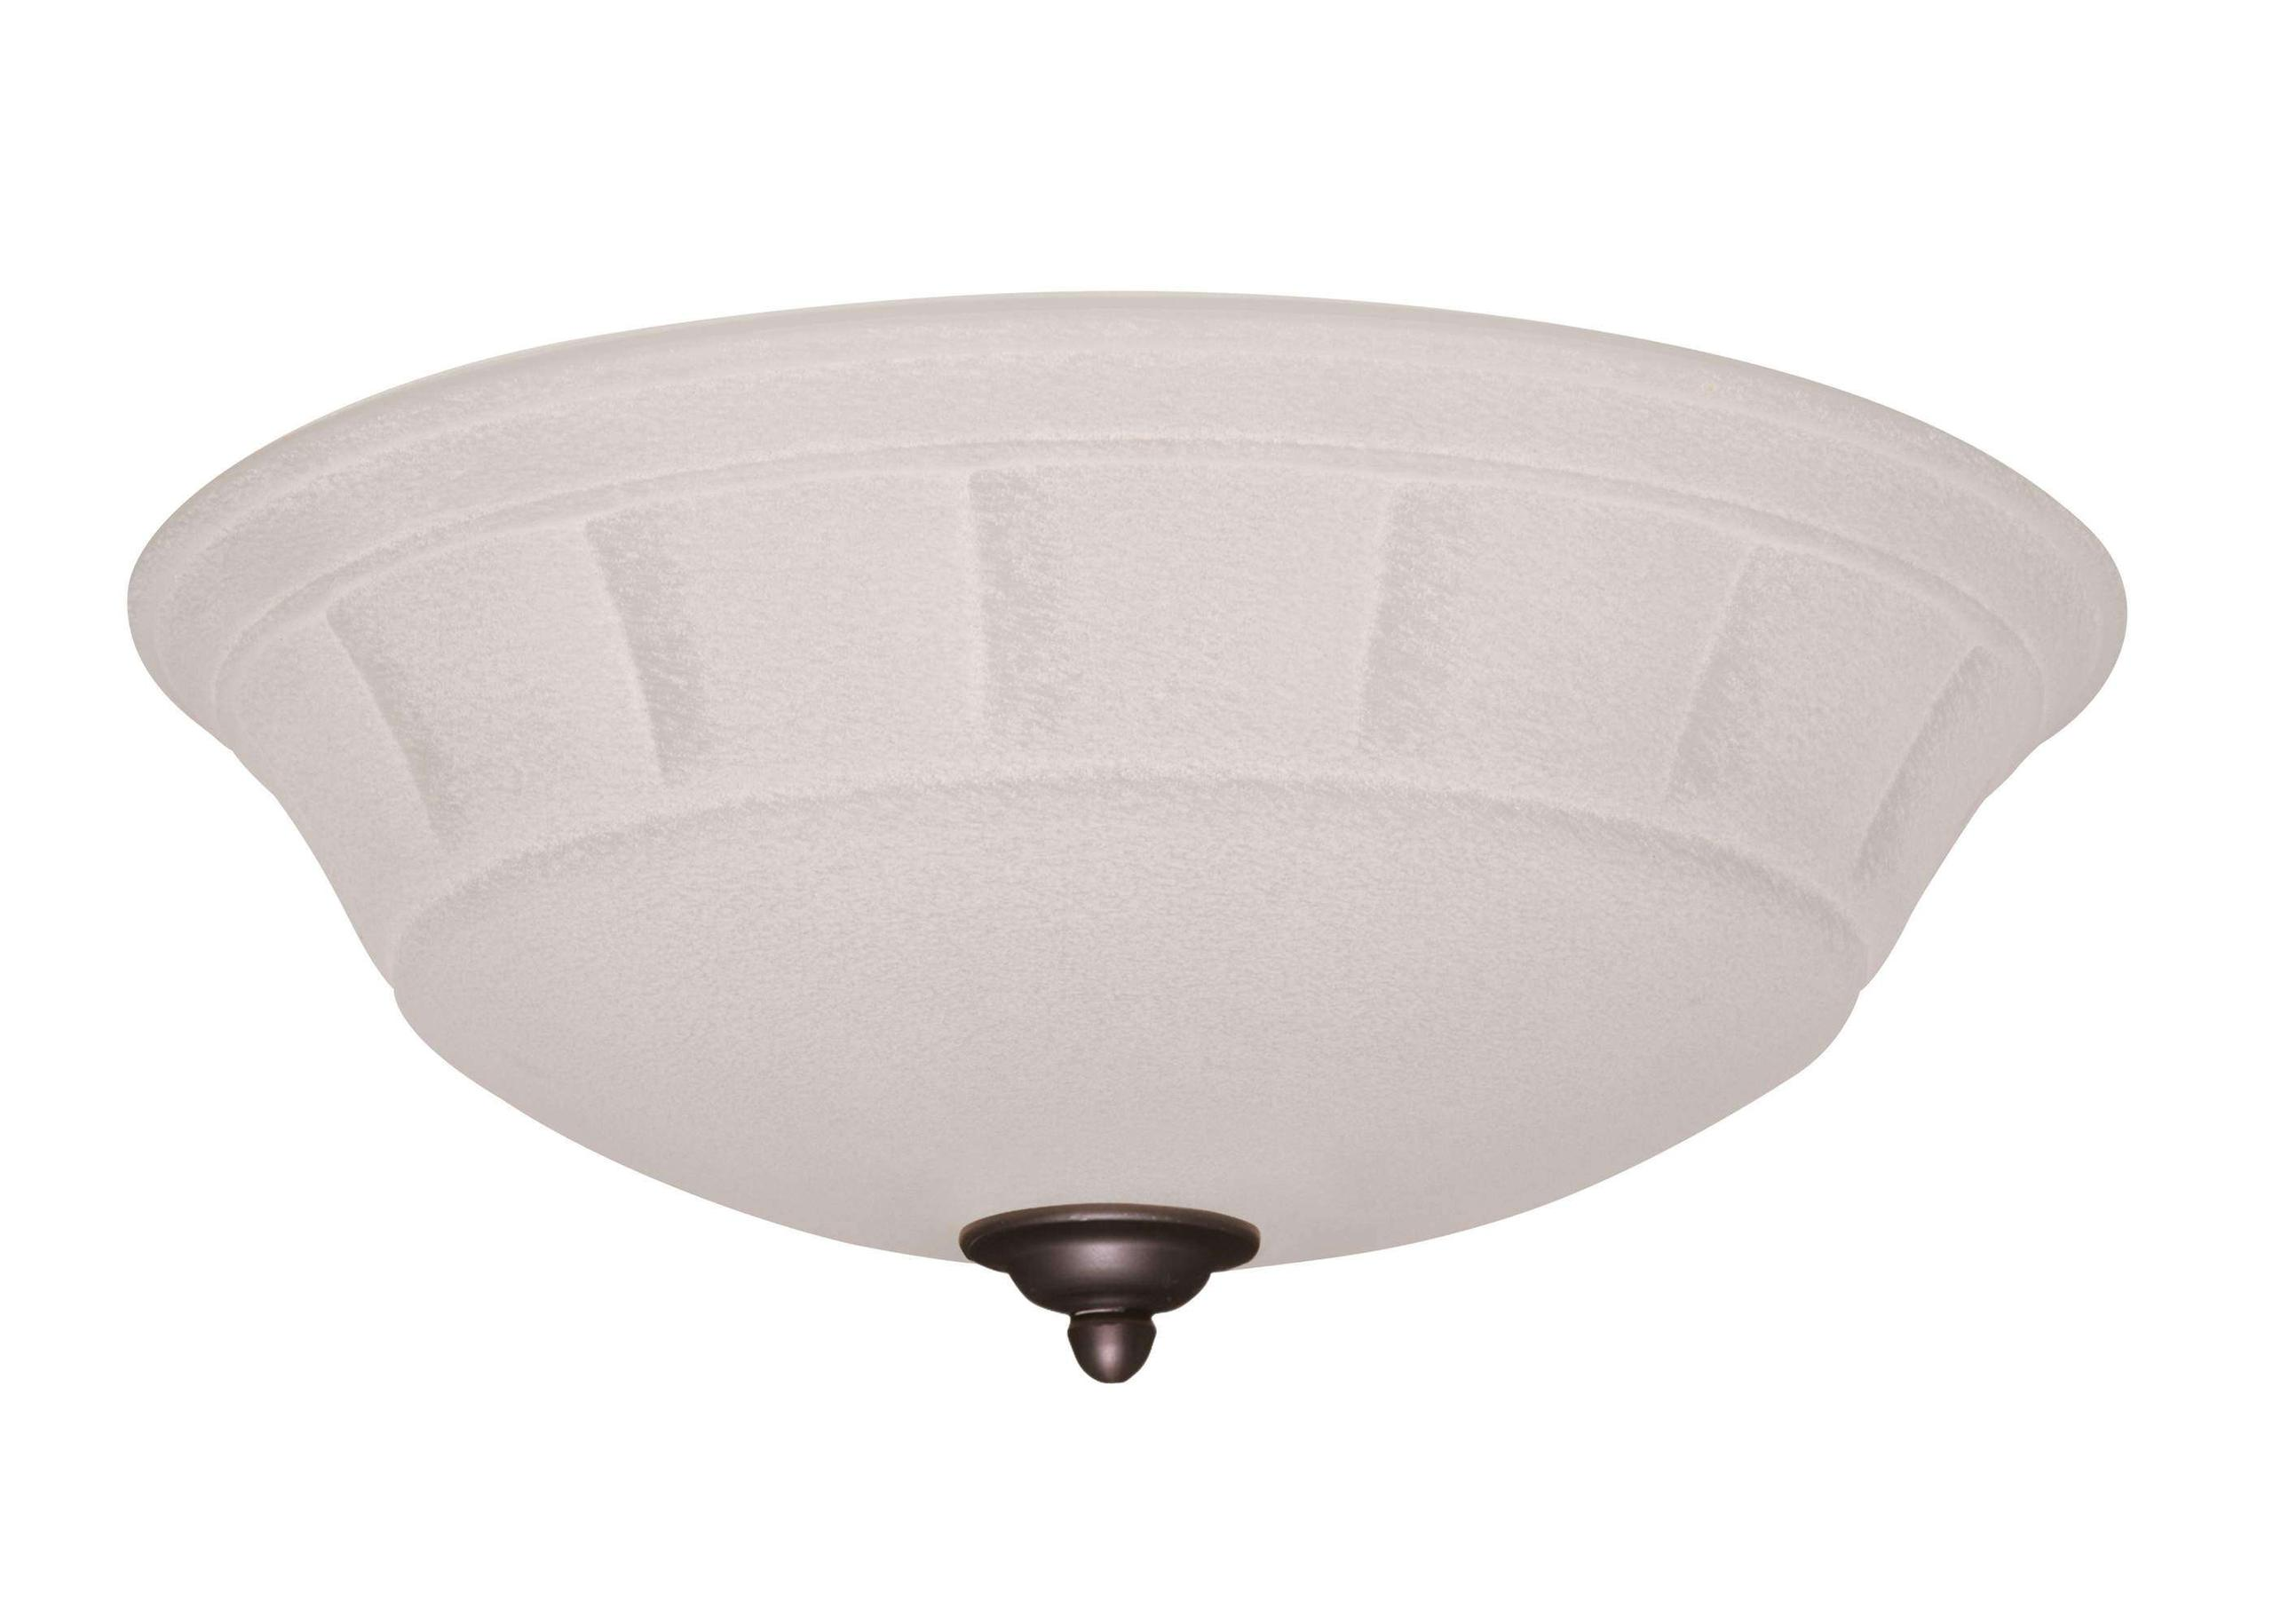 Emerson Light Fixture Model LK141ORB (finish shown may differ from actual finish)